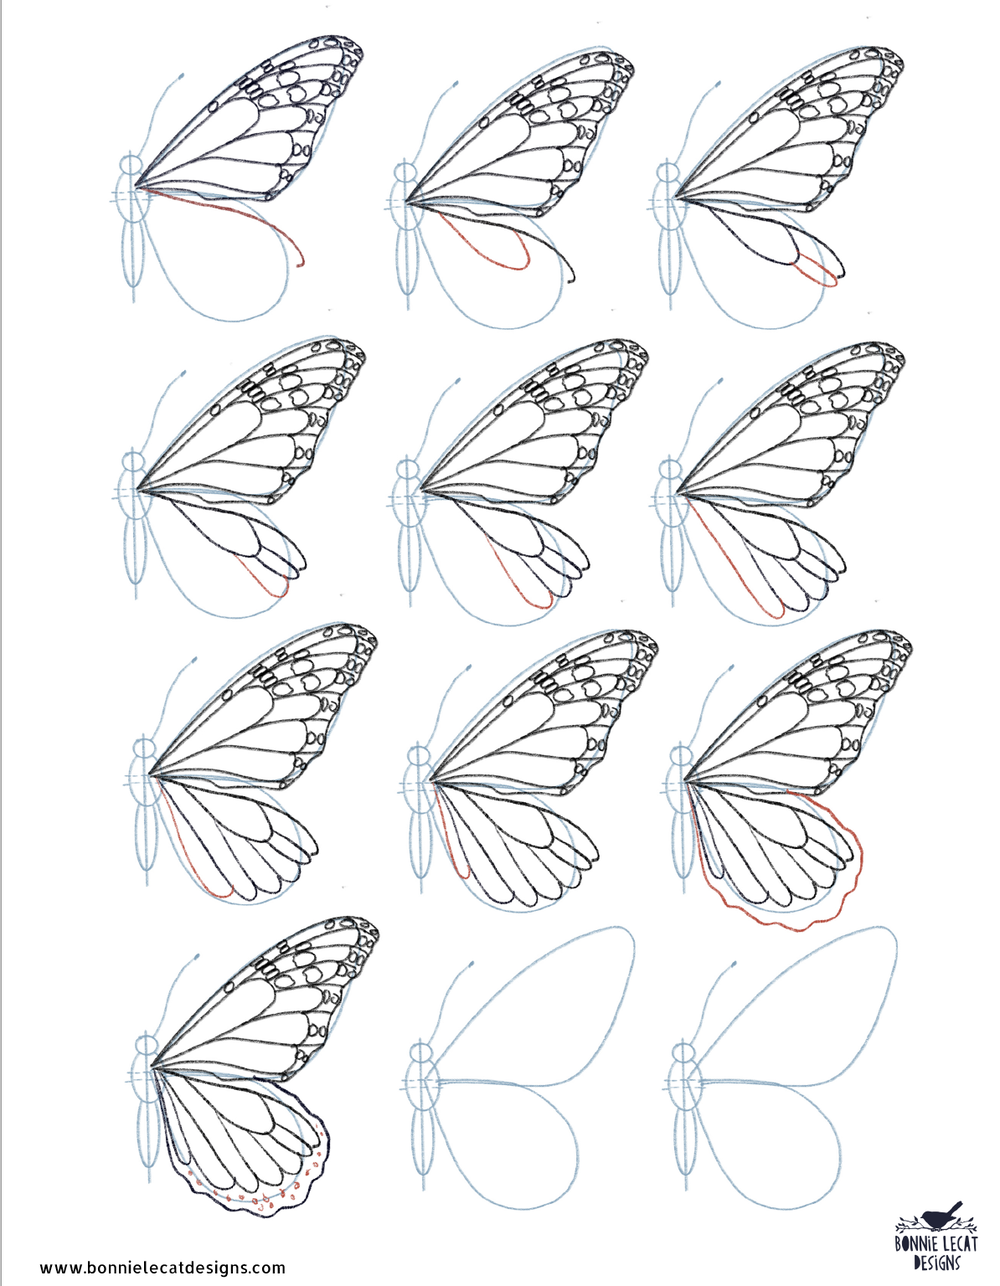 Once you have done the top and bottom lines, you can start adding the spots on the wings.